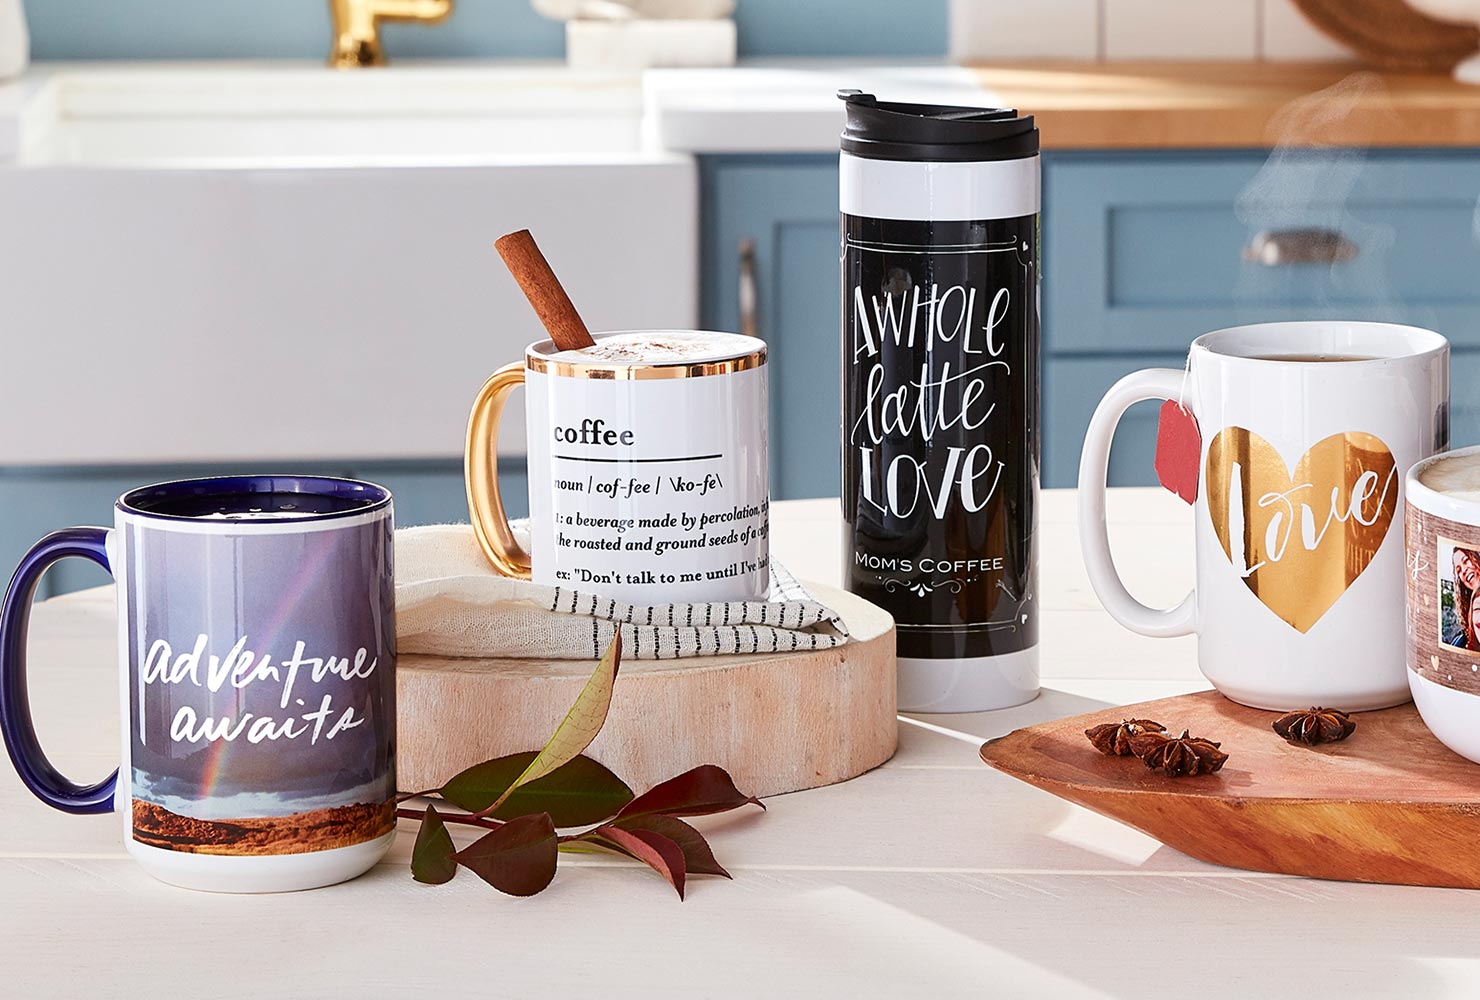 Coffee mugs and tumbler with quotes on table.